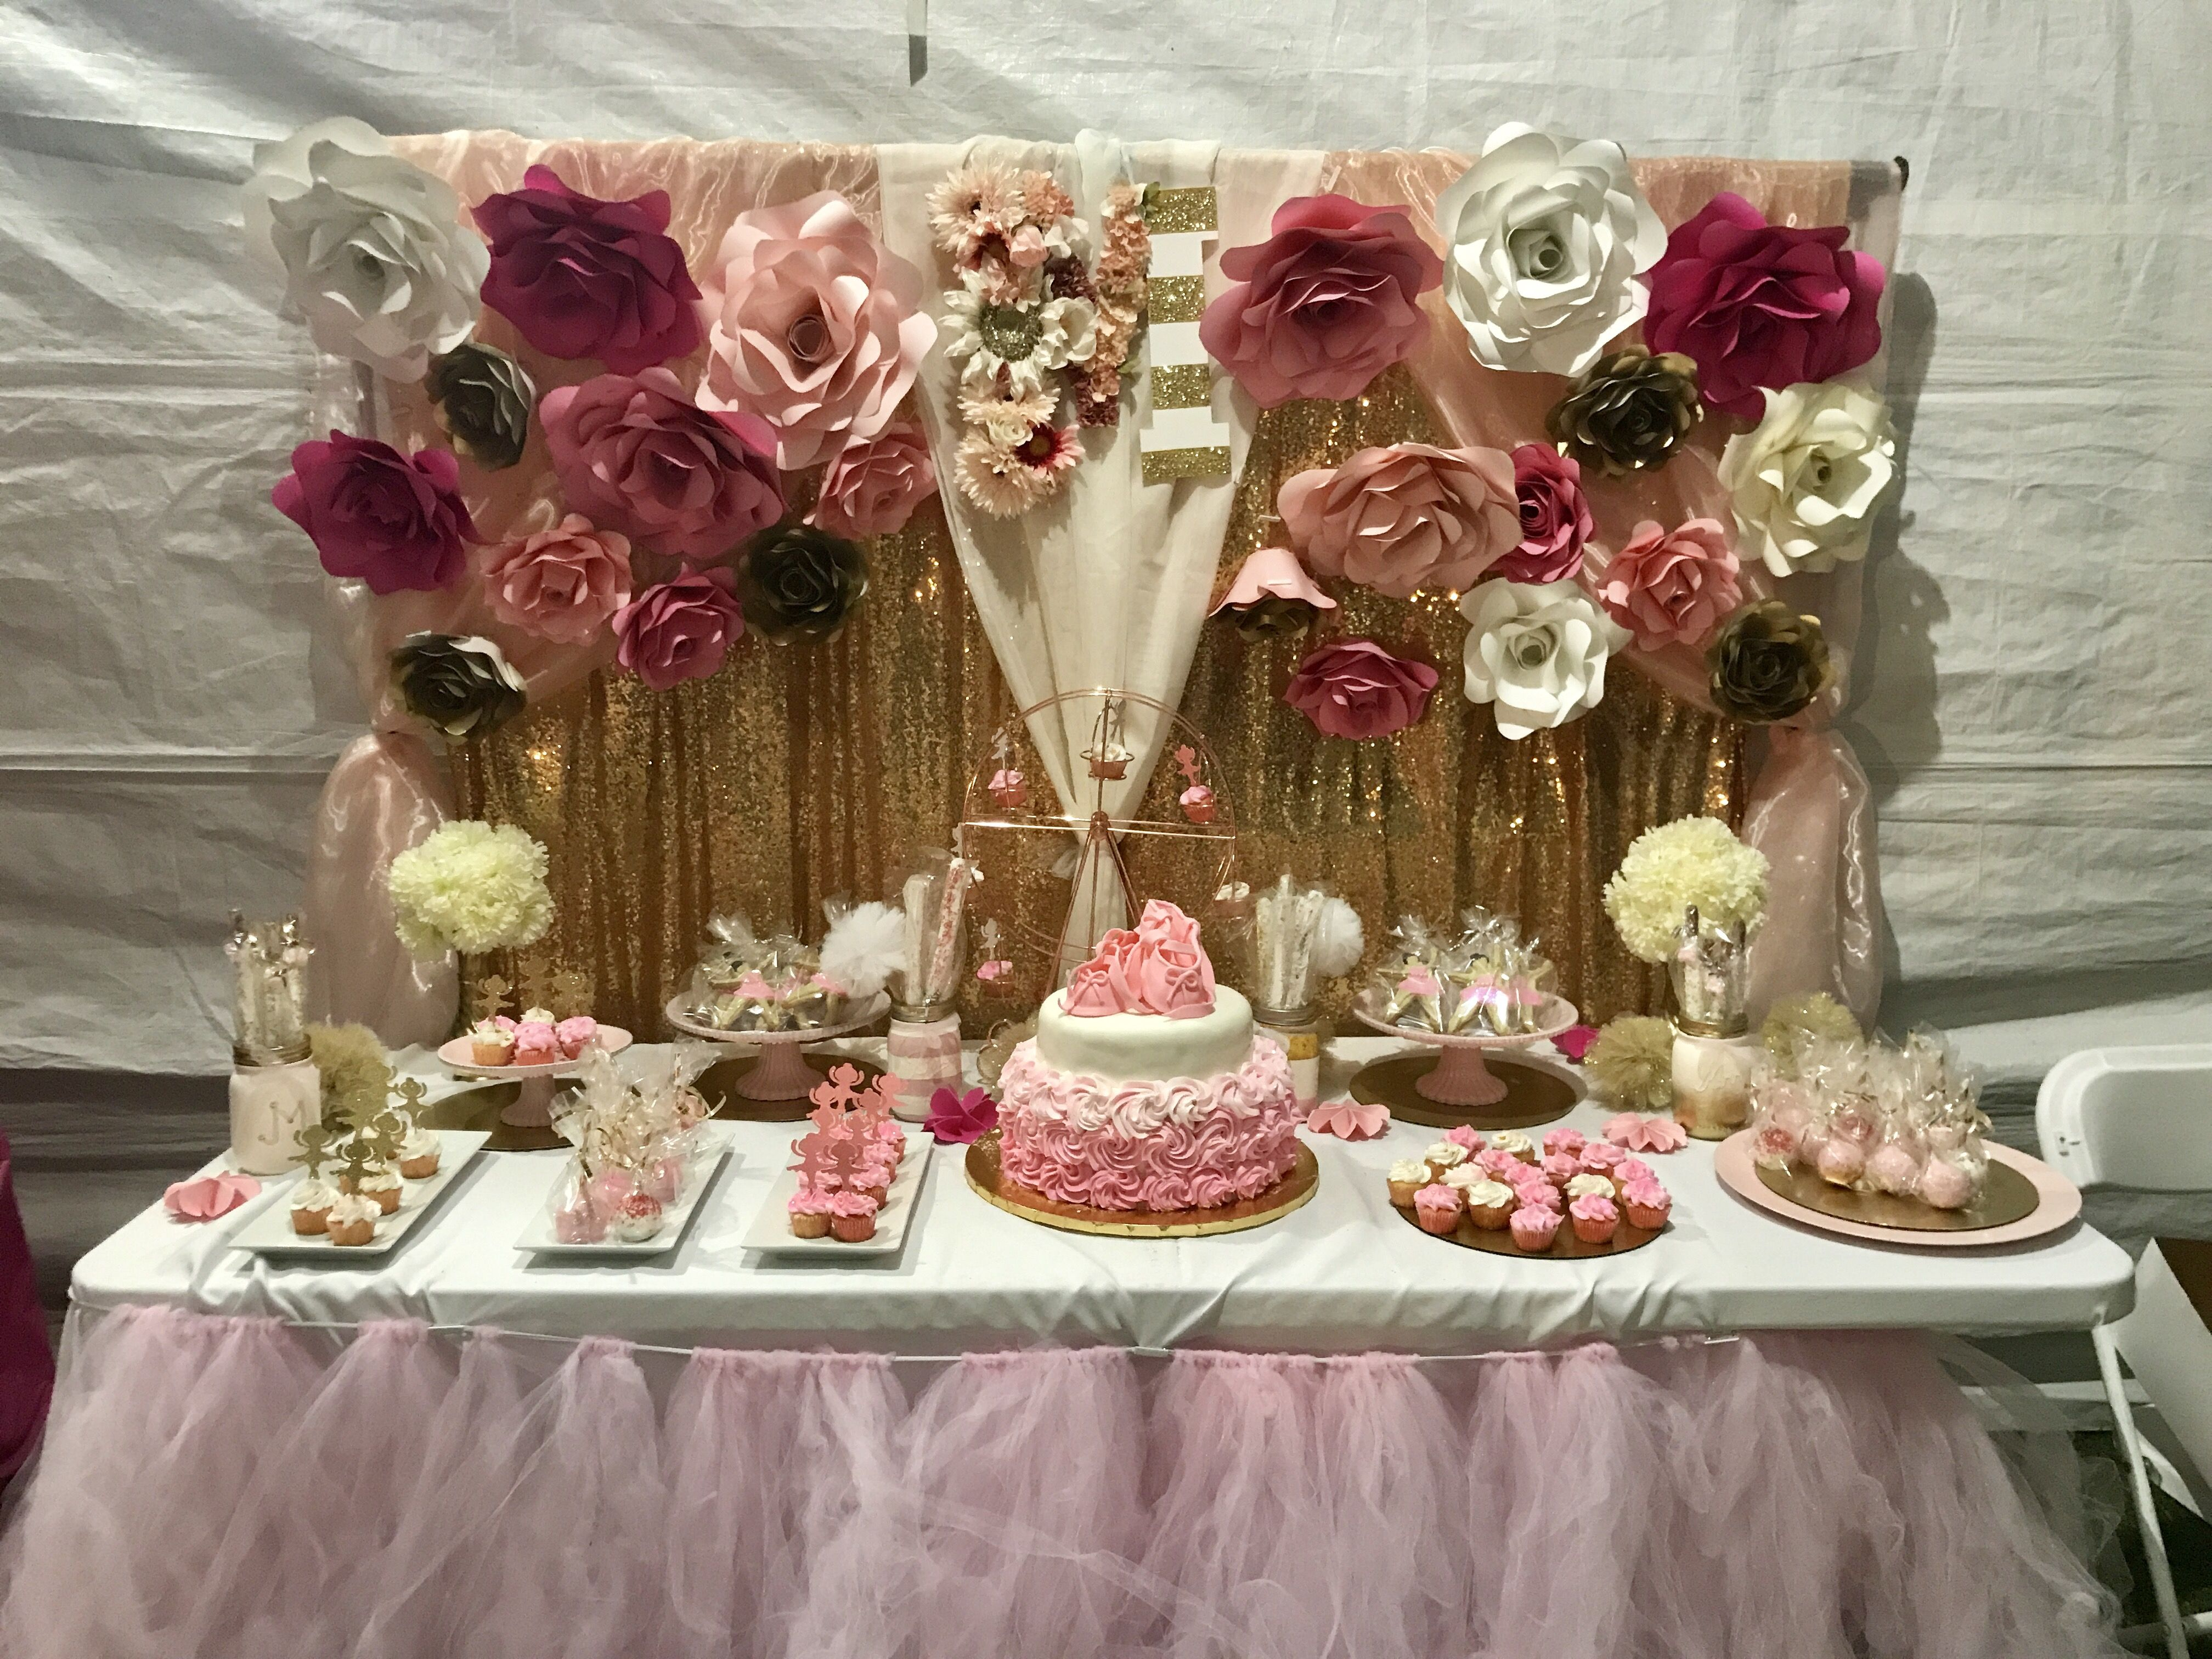 Garden decor for baby shower  Pin by Paula Tovar on Baby shower dessert table pink and gold with